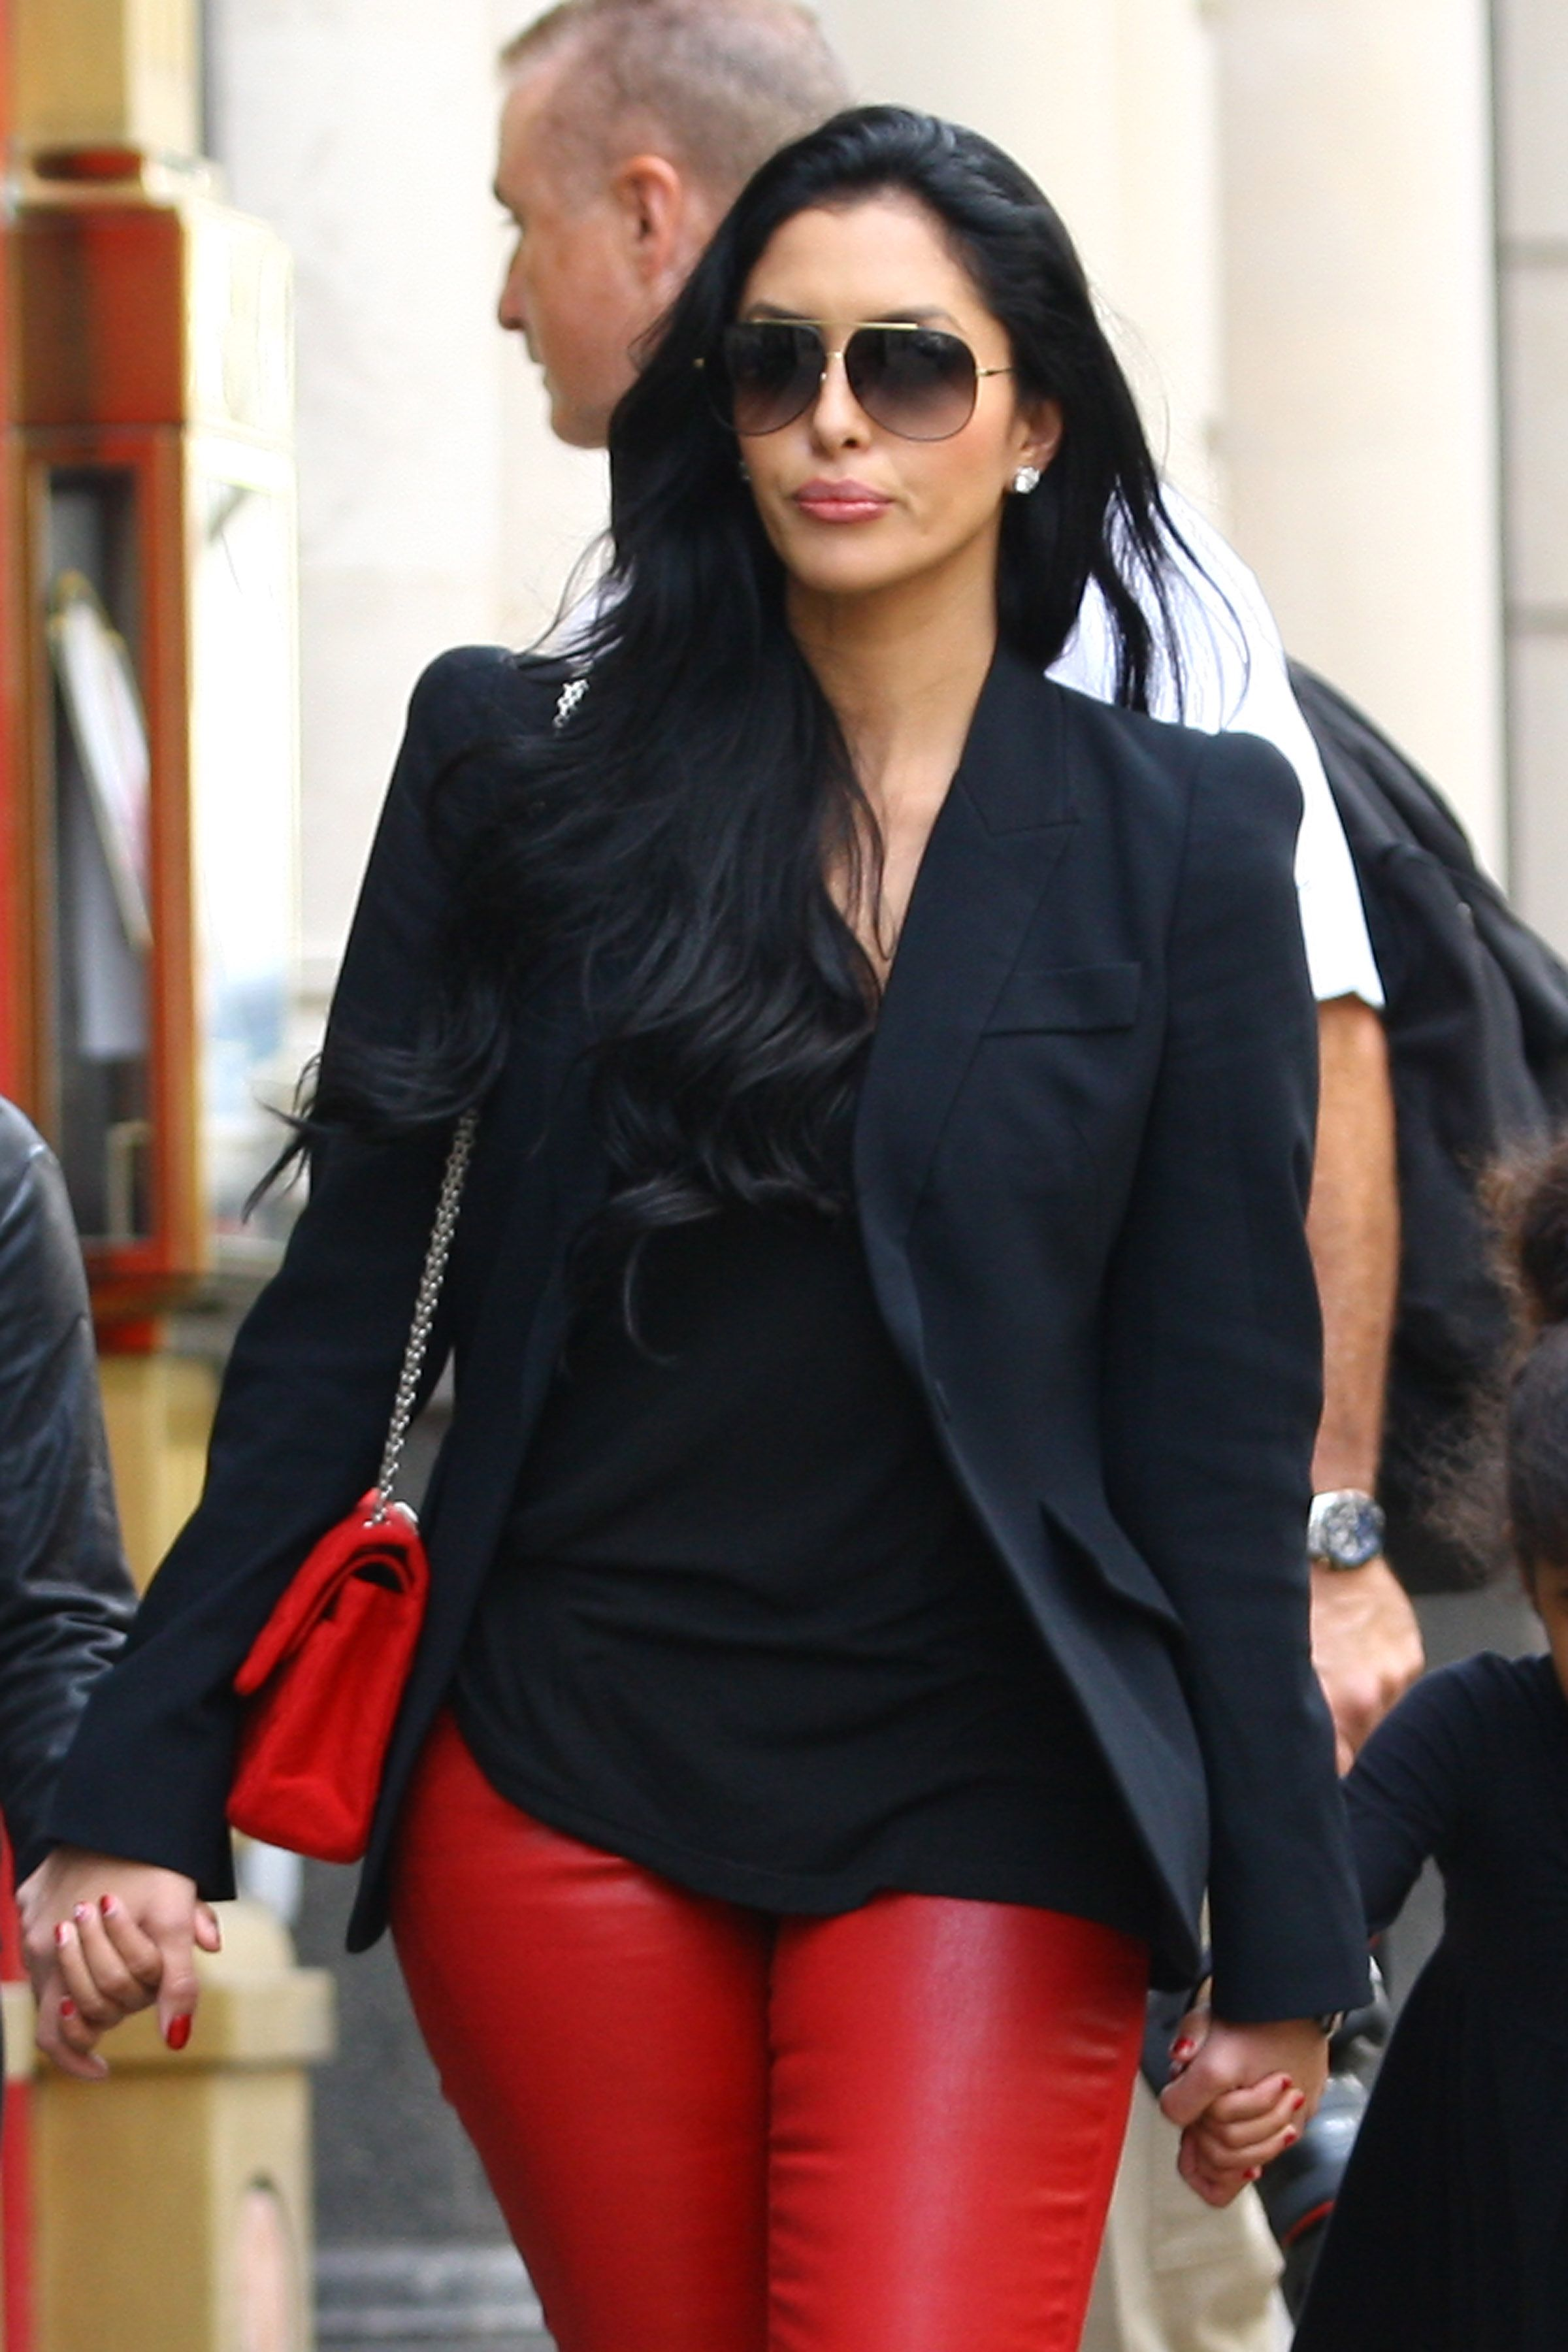 Vanessa Bryant shopping at Dolce & Gabbana on Old Bond St on July 30, 2012, in London. | Photo: Getty Images